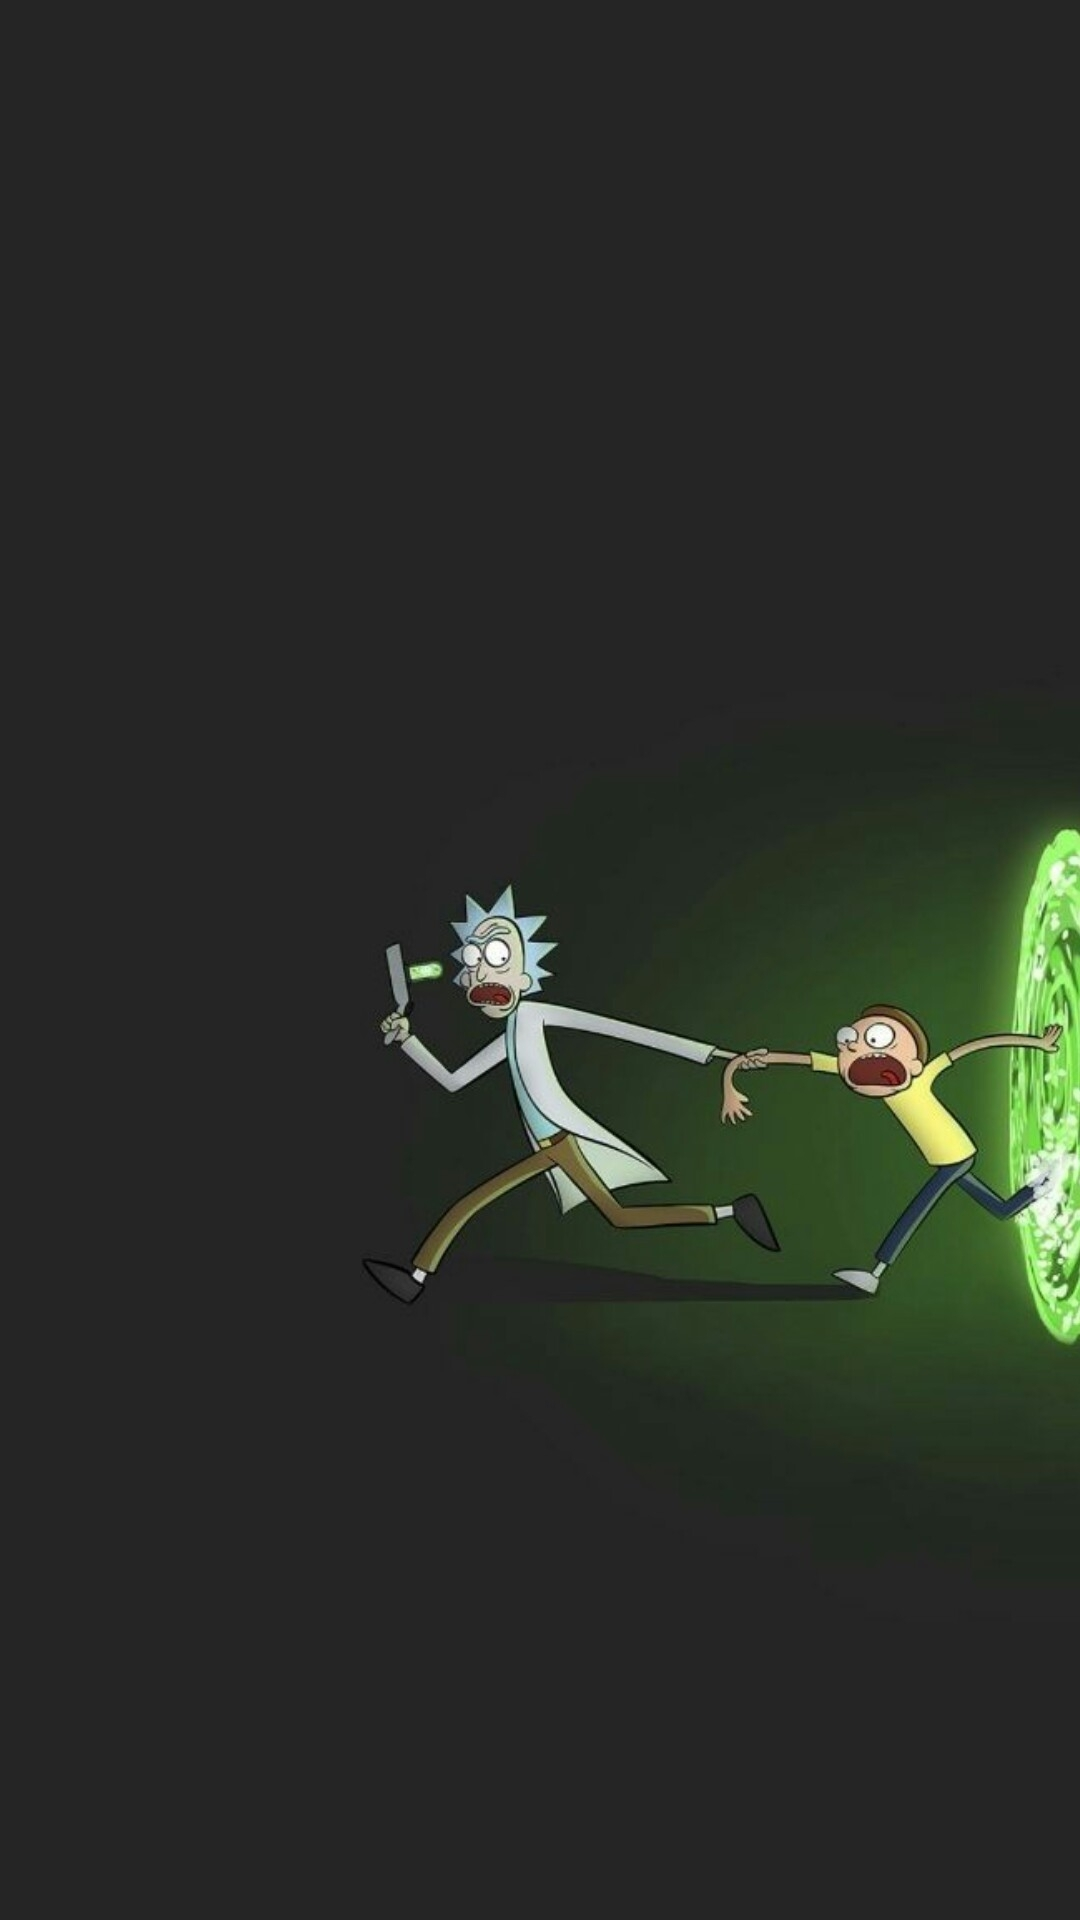 10 Most Popular Rick And Morty Wallpapers FULL HD 1080p ...